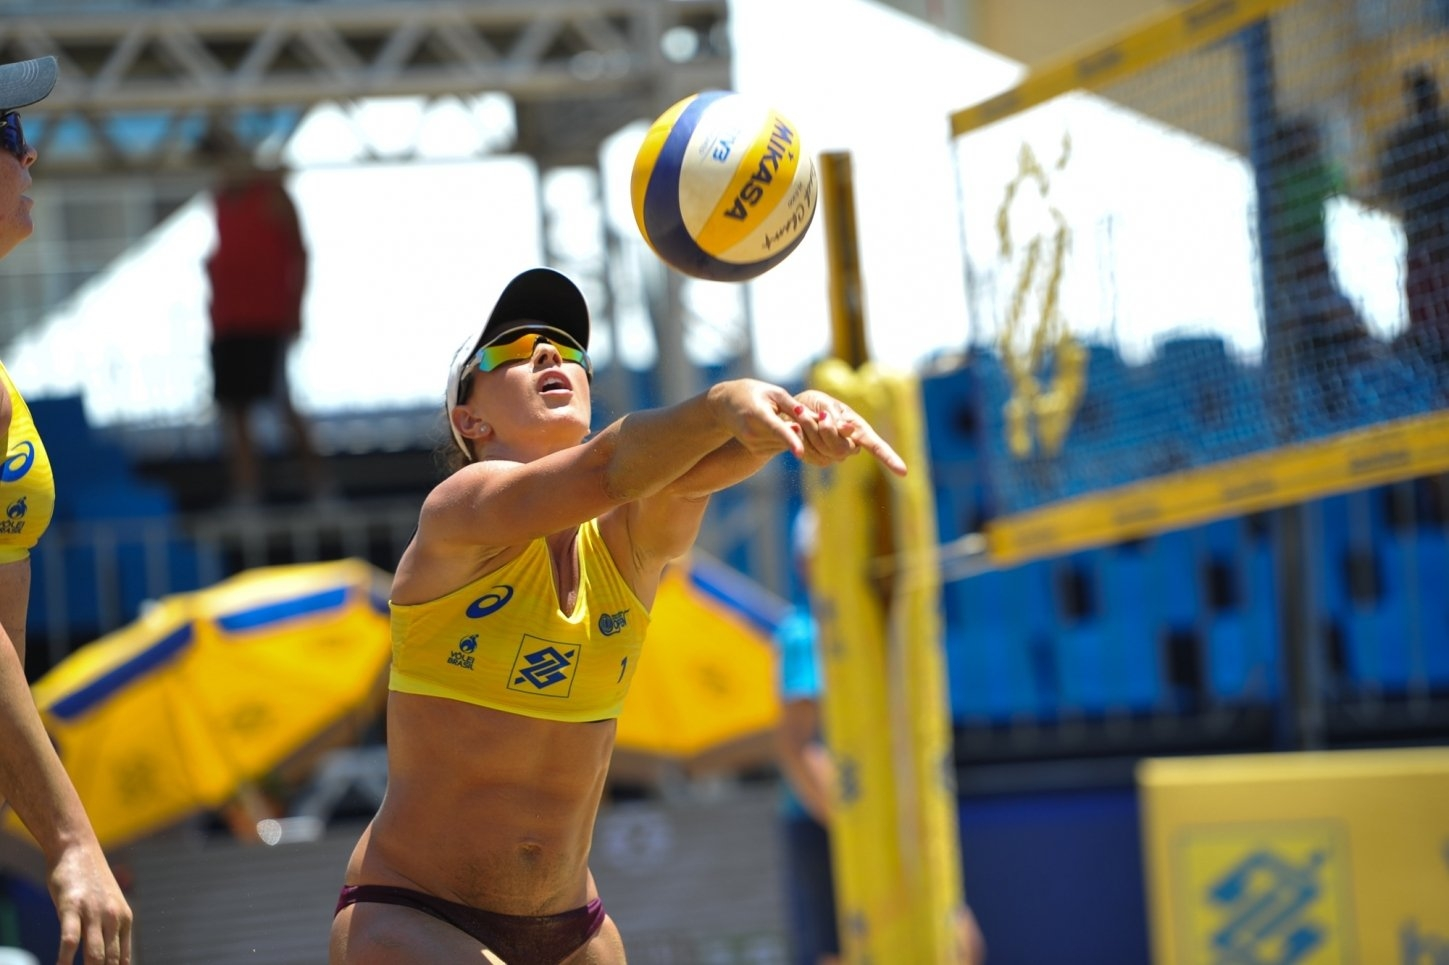 Since 2017, Maria Clara has been competing in both the Brazilian Tour and the AVP (Photocredit: CBV)